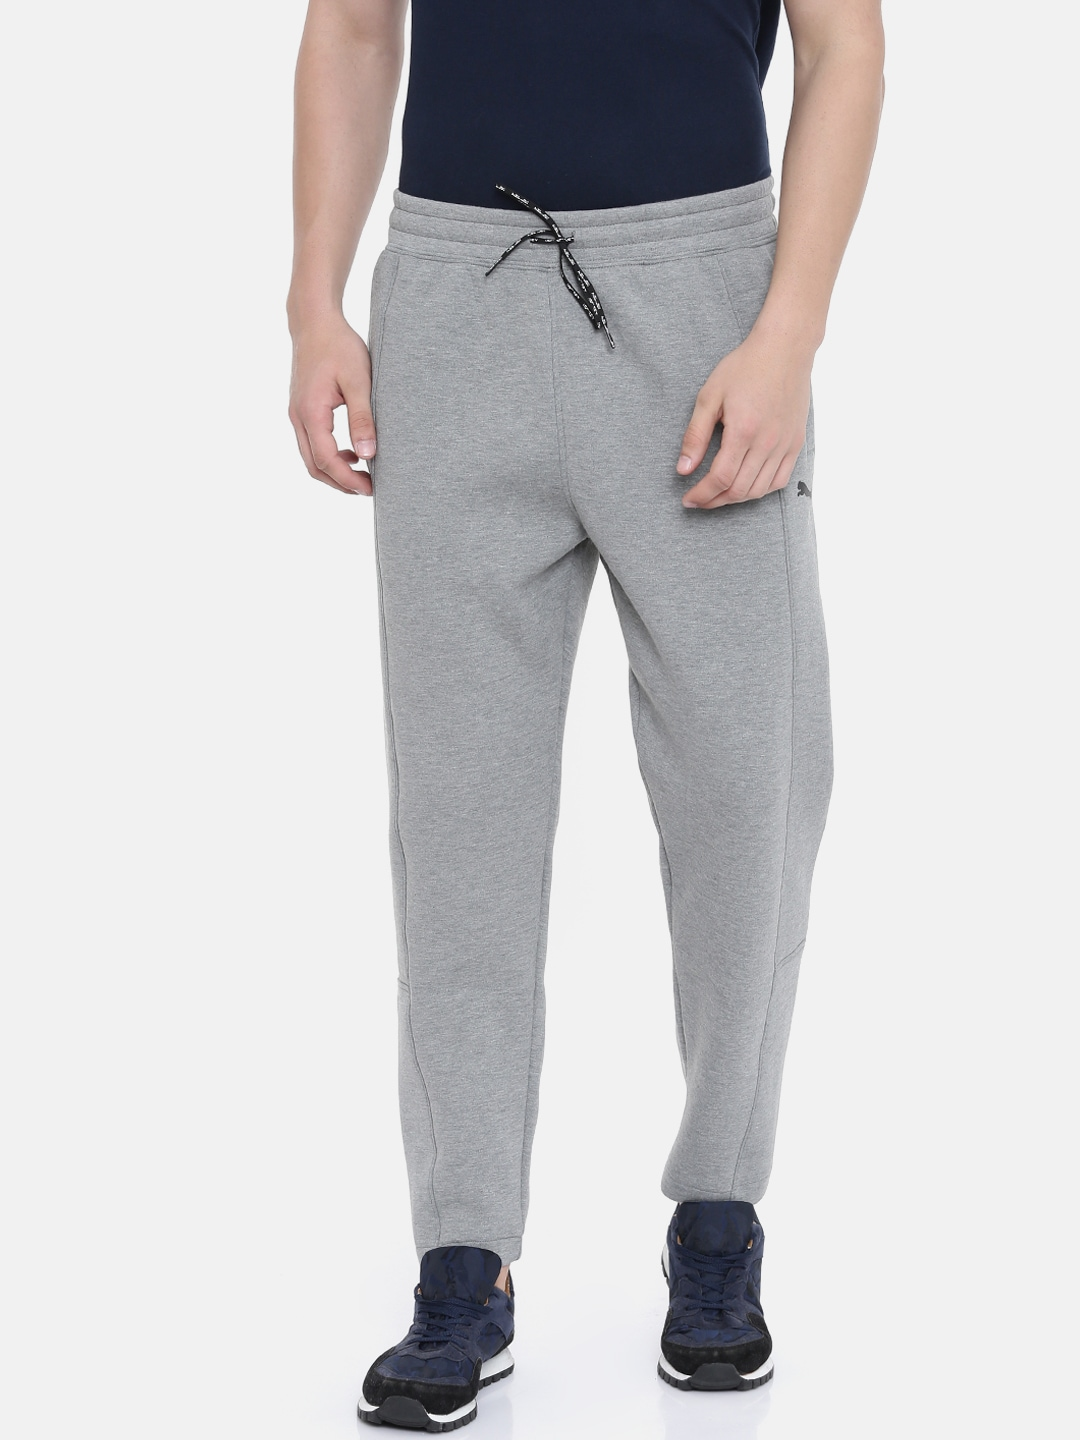 2930959ce54b Puma Sports Shoes Track Pants Trousers - Buy Puma Sports Shoes Track Pants  Trousers online in India